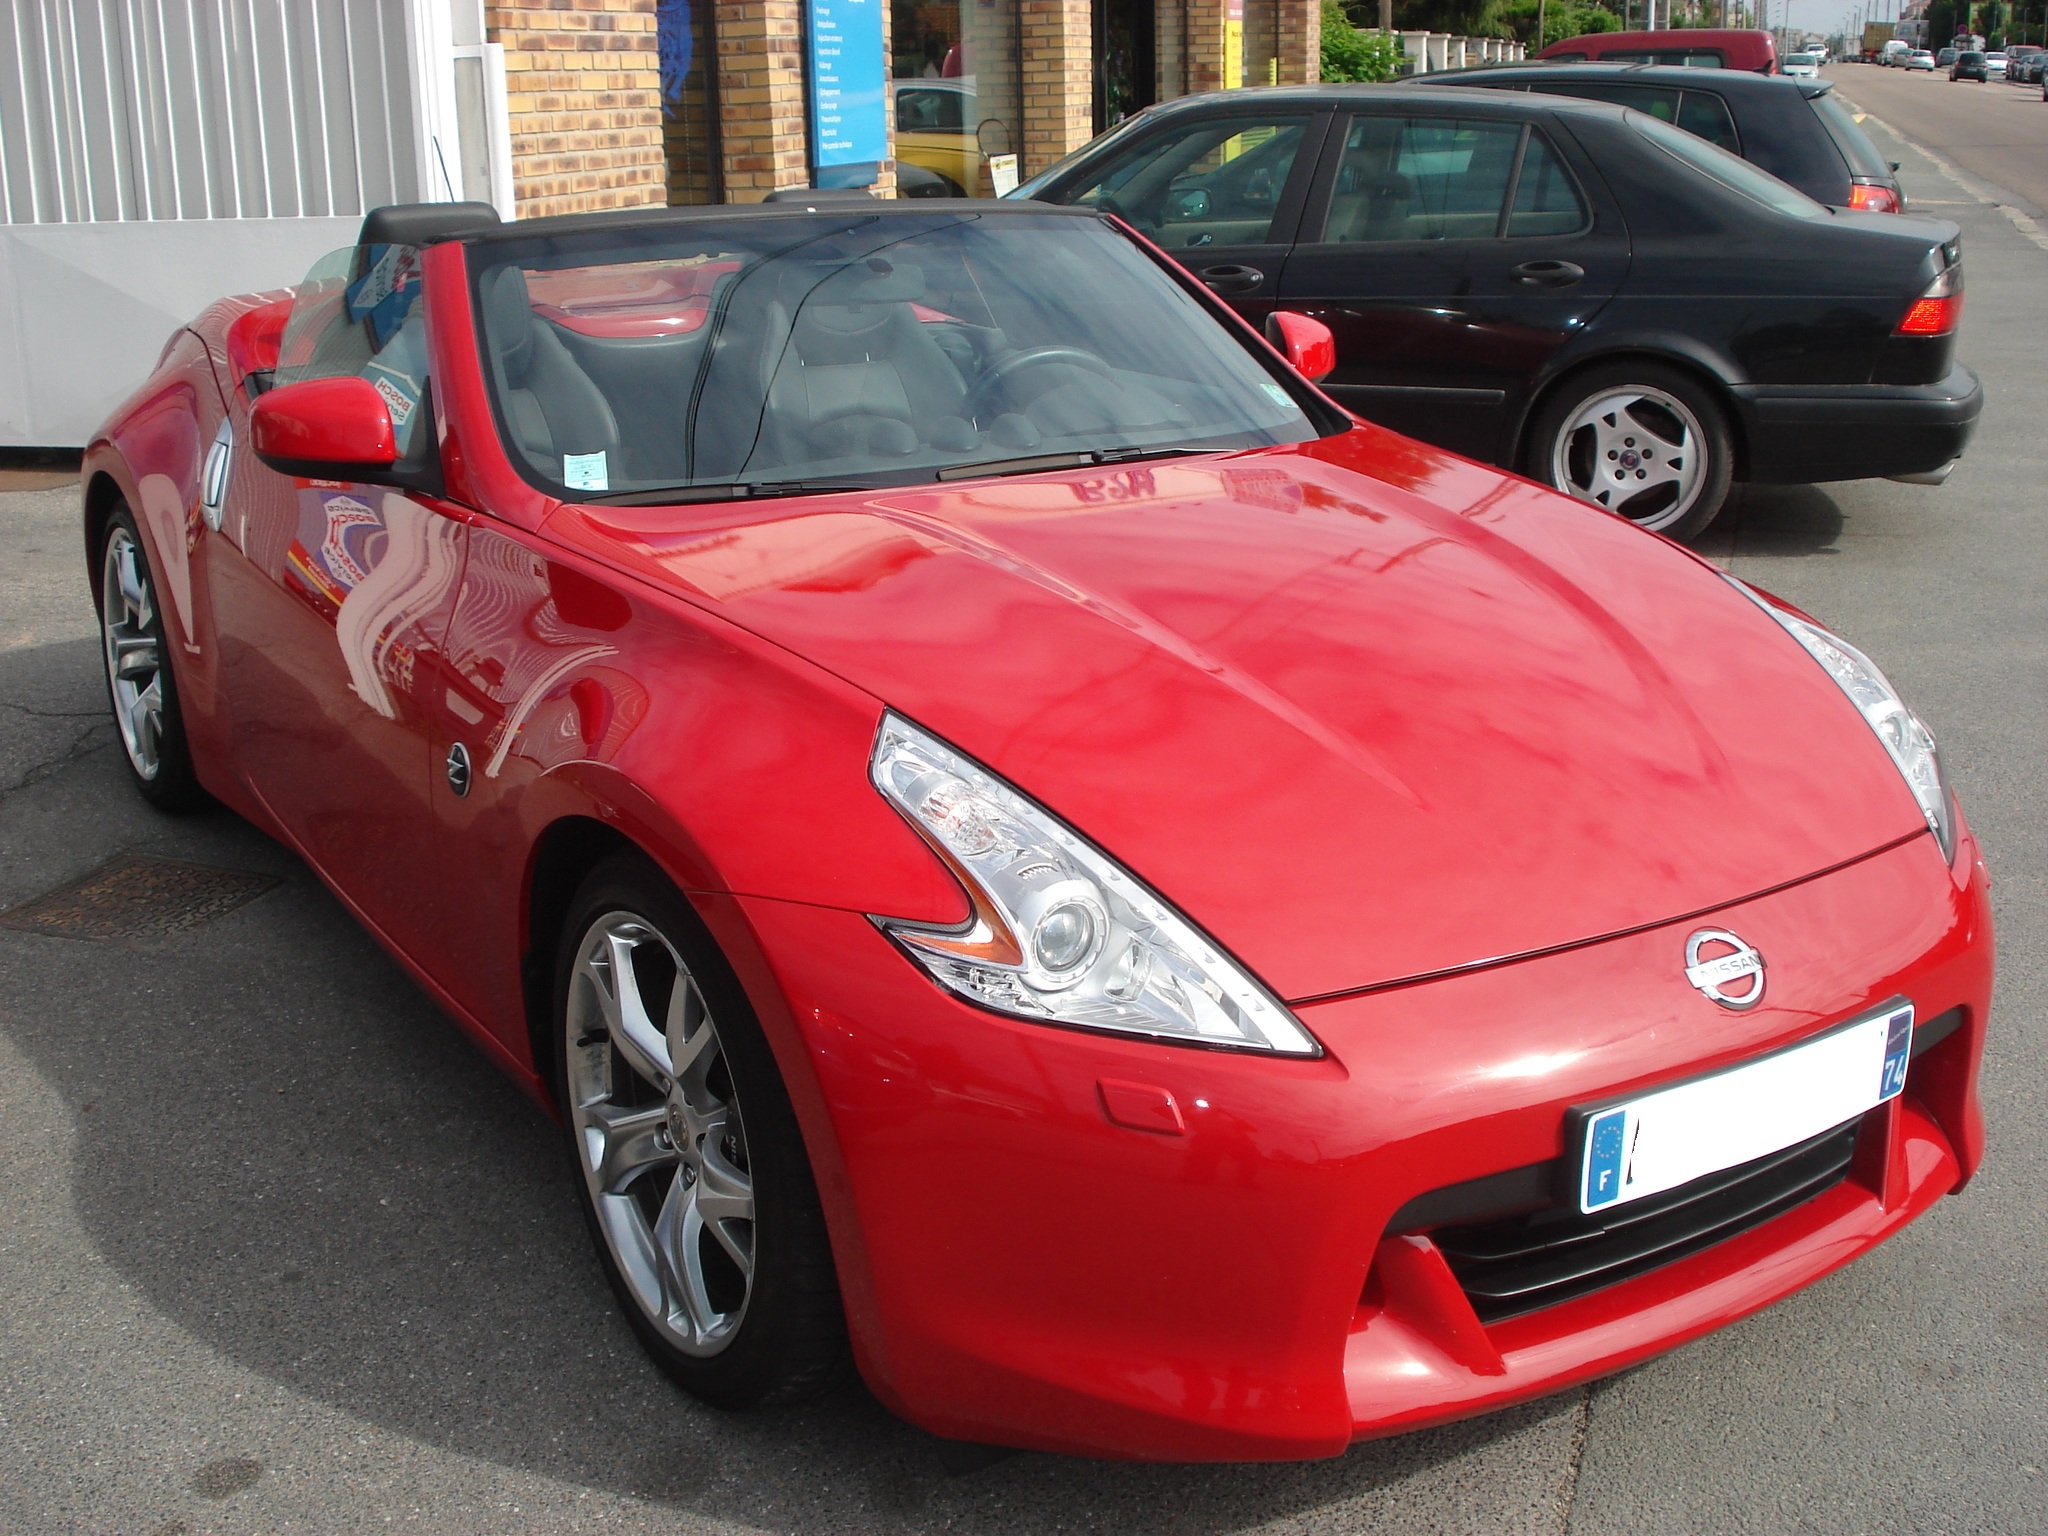 lhd car NISSAN 370 Z (01/2010) - Red - lieu: